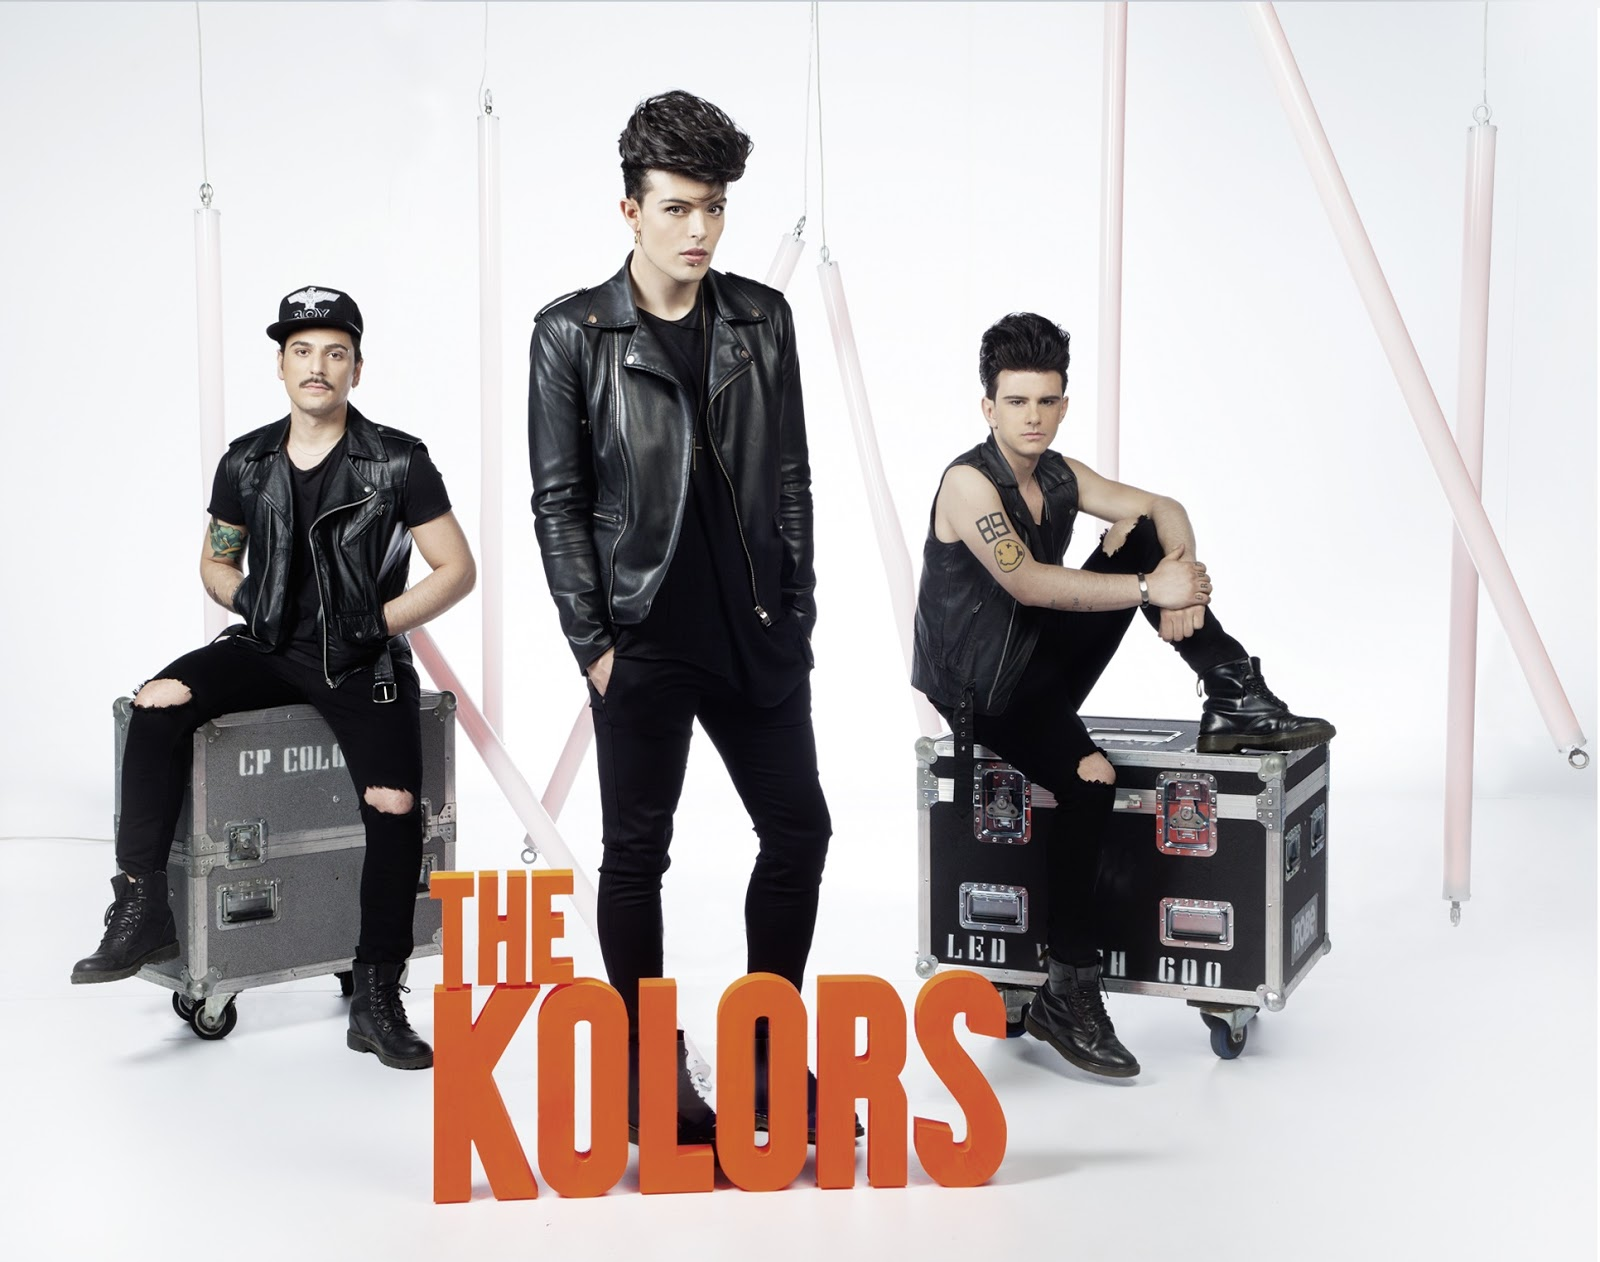 Light On - The Kolors: testo, video e traduzione